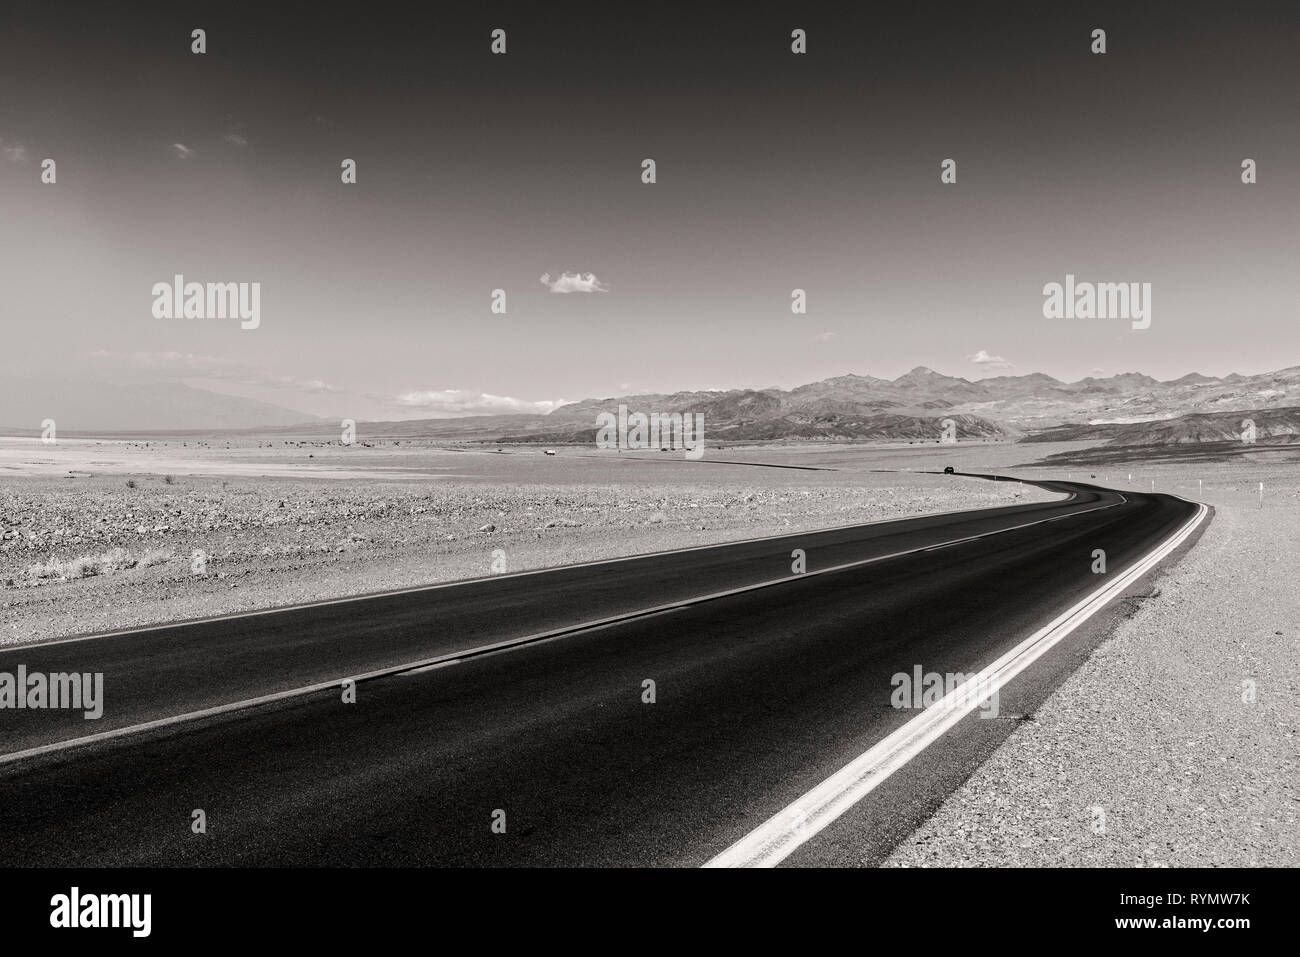 Paved road curving through the barren desert towards mountains in the distance. Black and white. - Stock Image